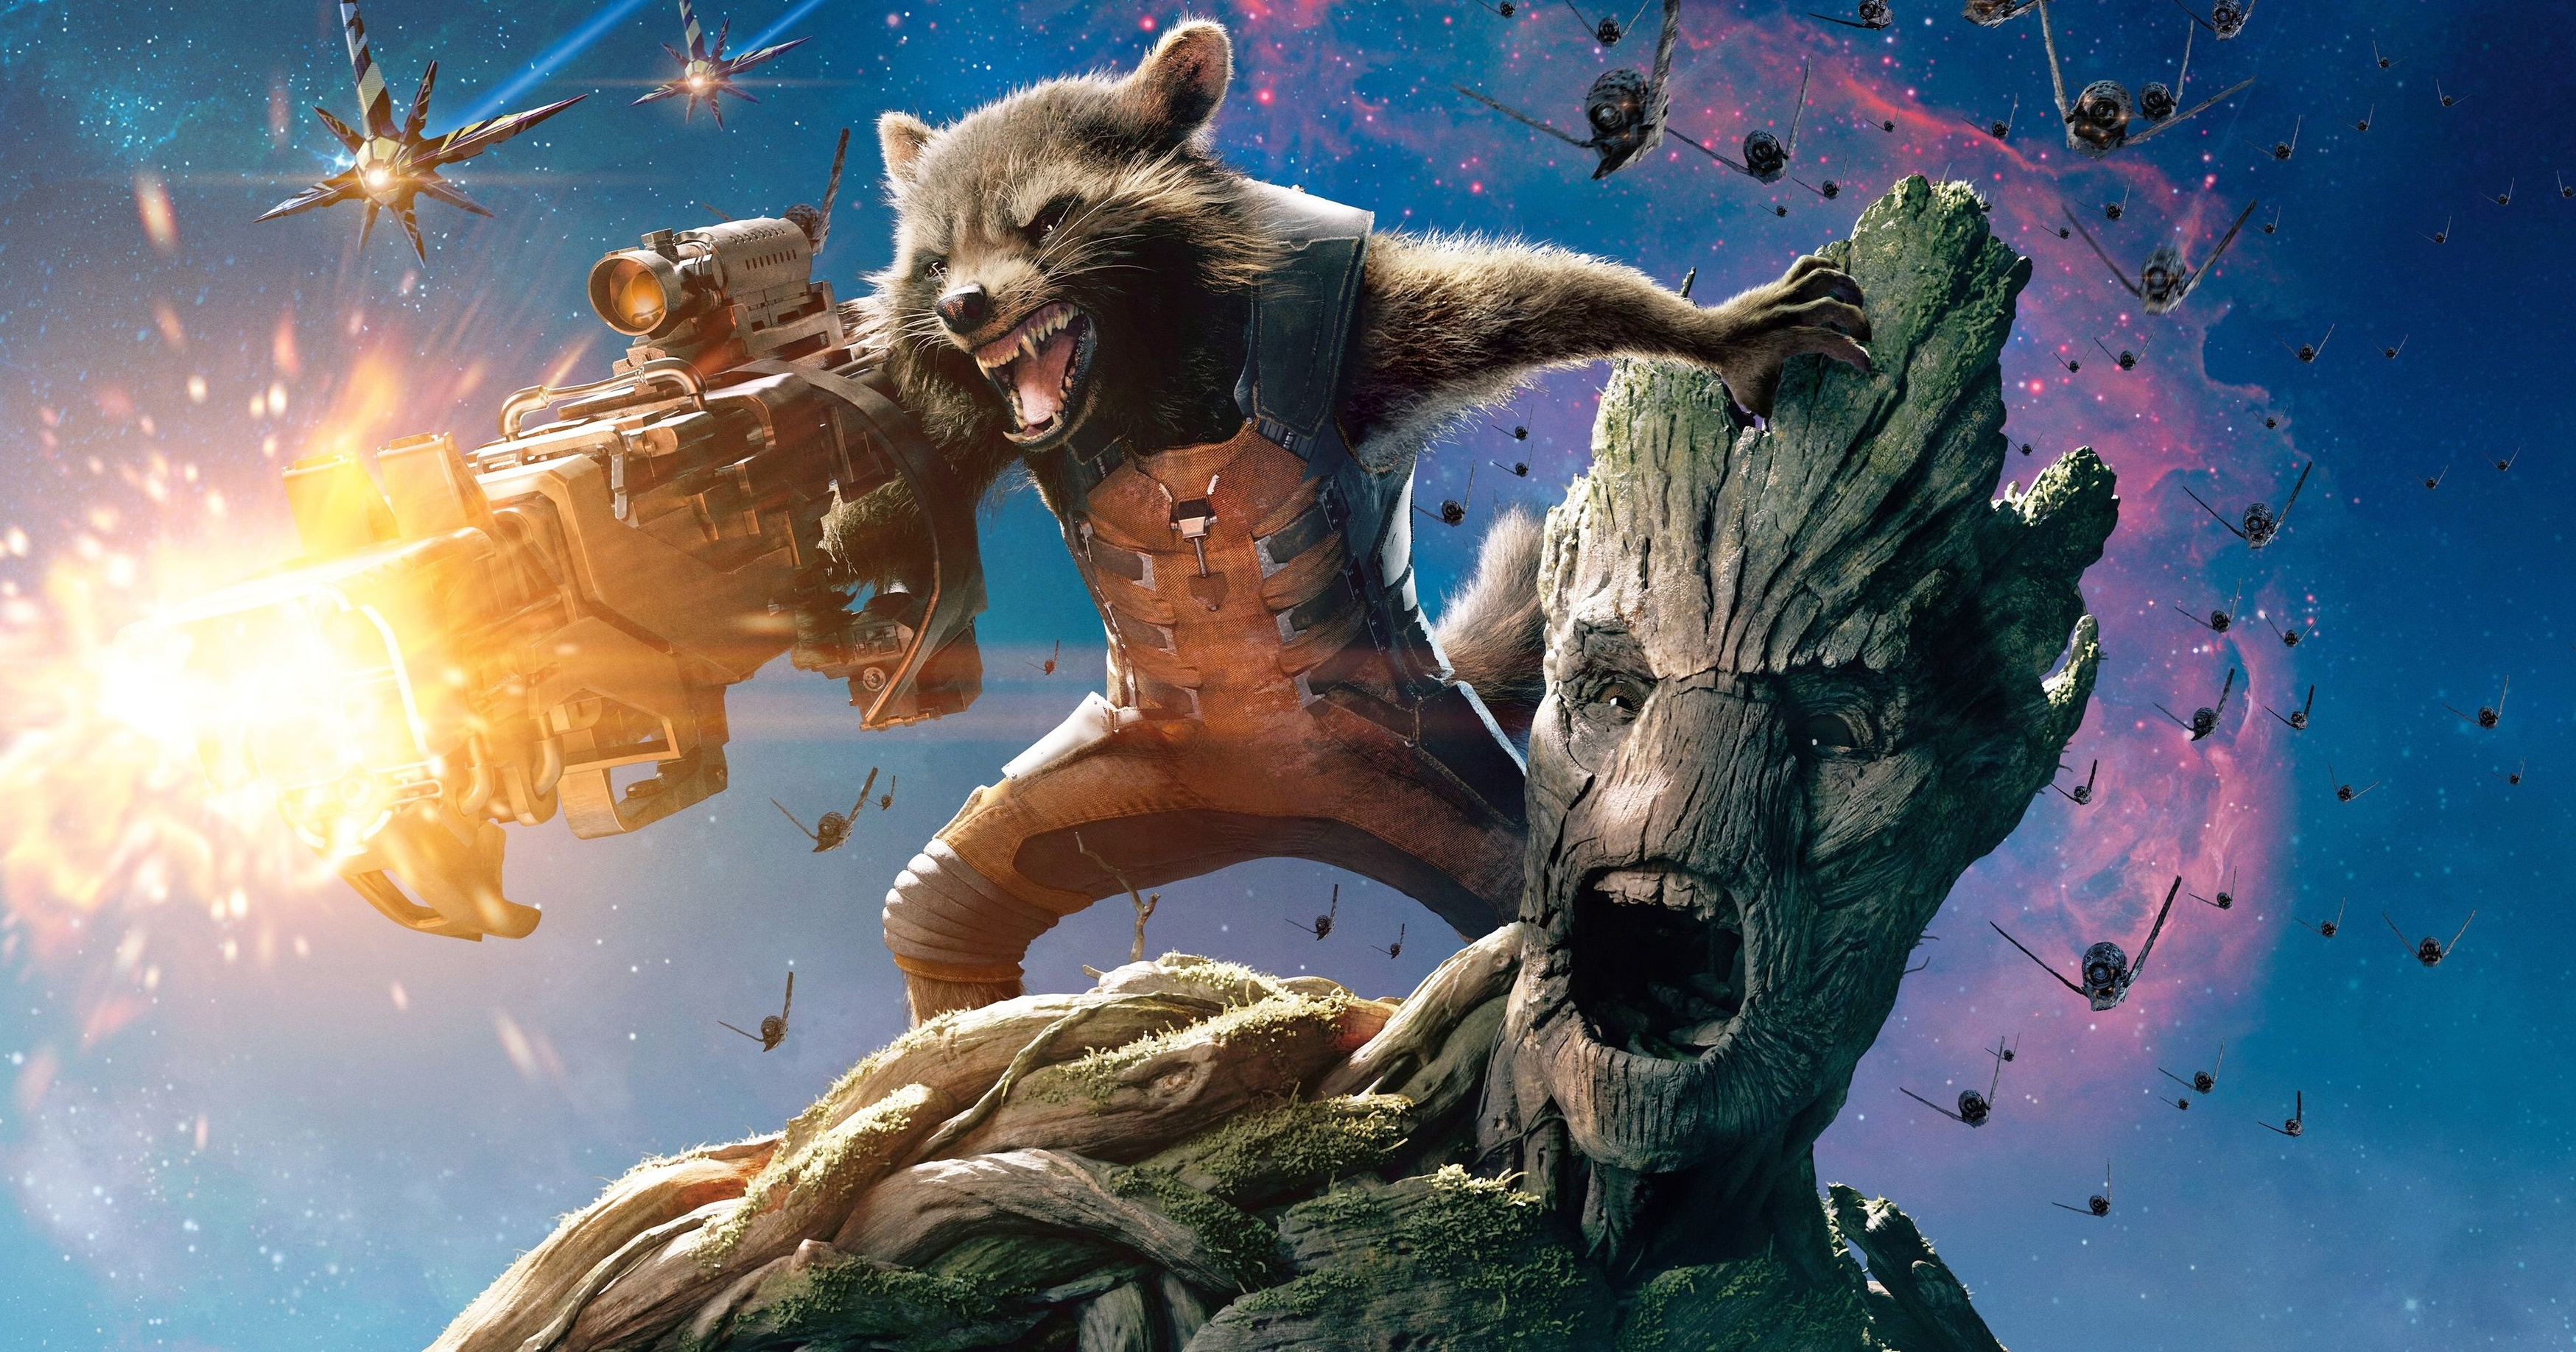 groot-and-rocket-raccoon-guardians-of-the-galaxy-3j-3840x2400.jpg